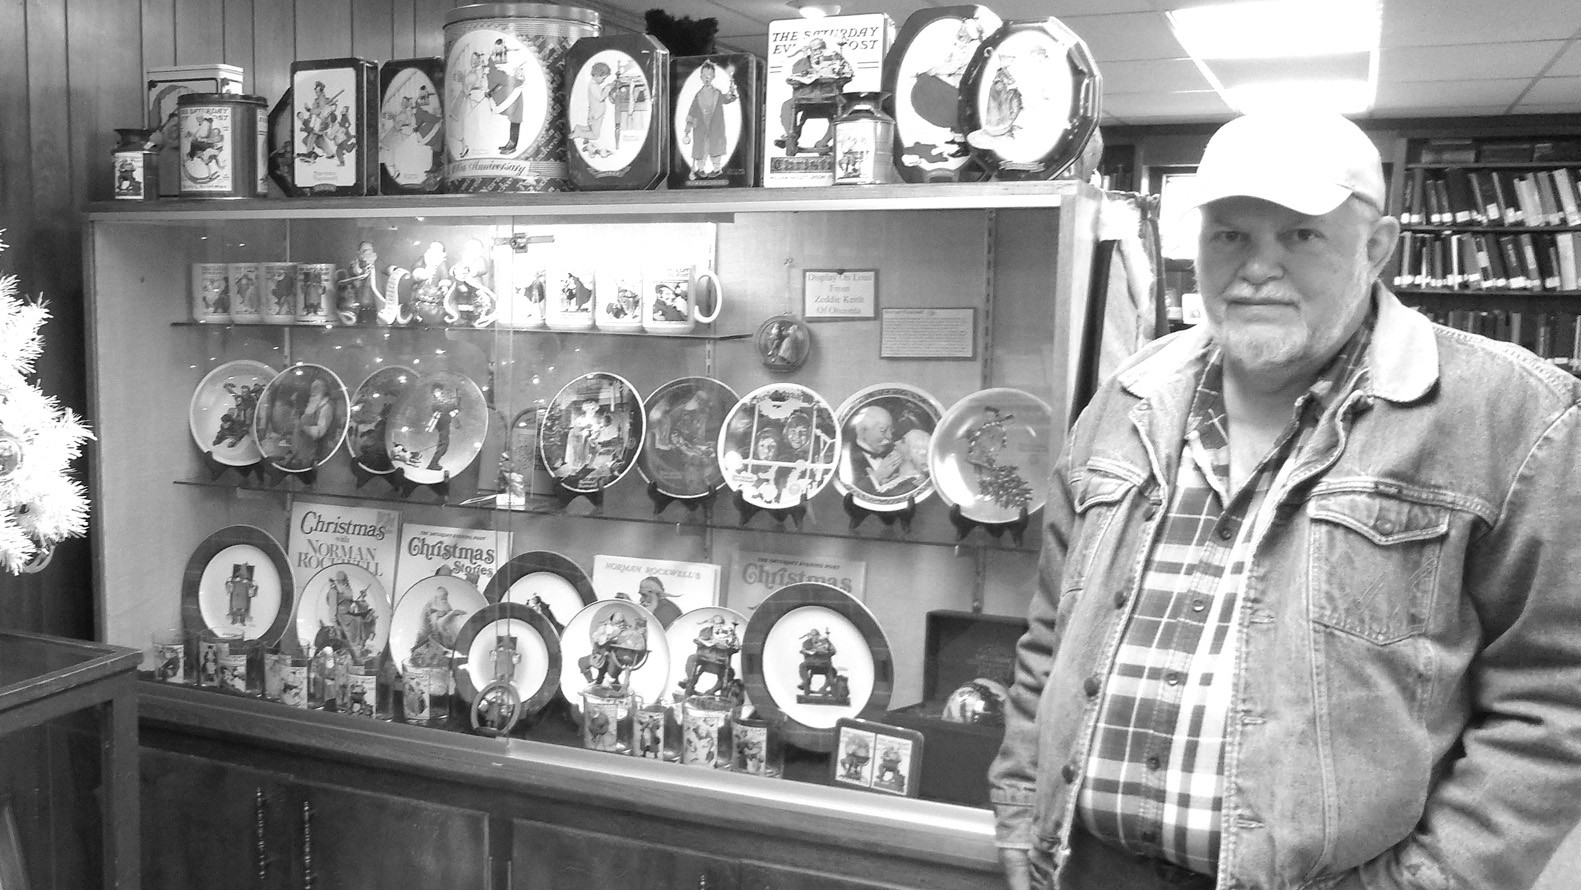 Zeddie Keith, of Oneonta, has loaned his Norman Rockwell collection to the Blount County Memorial Museum. The collection includes Christmas dishes, coffee cups, mugs, cookie tins, Christmas ornaments, and more and will be available for viewing throughout the holiday season. The museum is open Tuesday – Thursday, 8 a.m. until 5 p.m. – Nicole Singleton